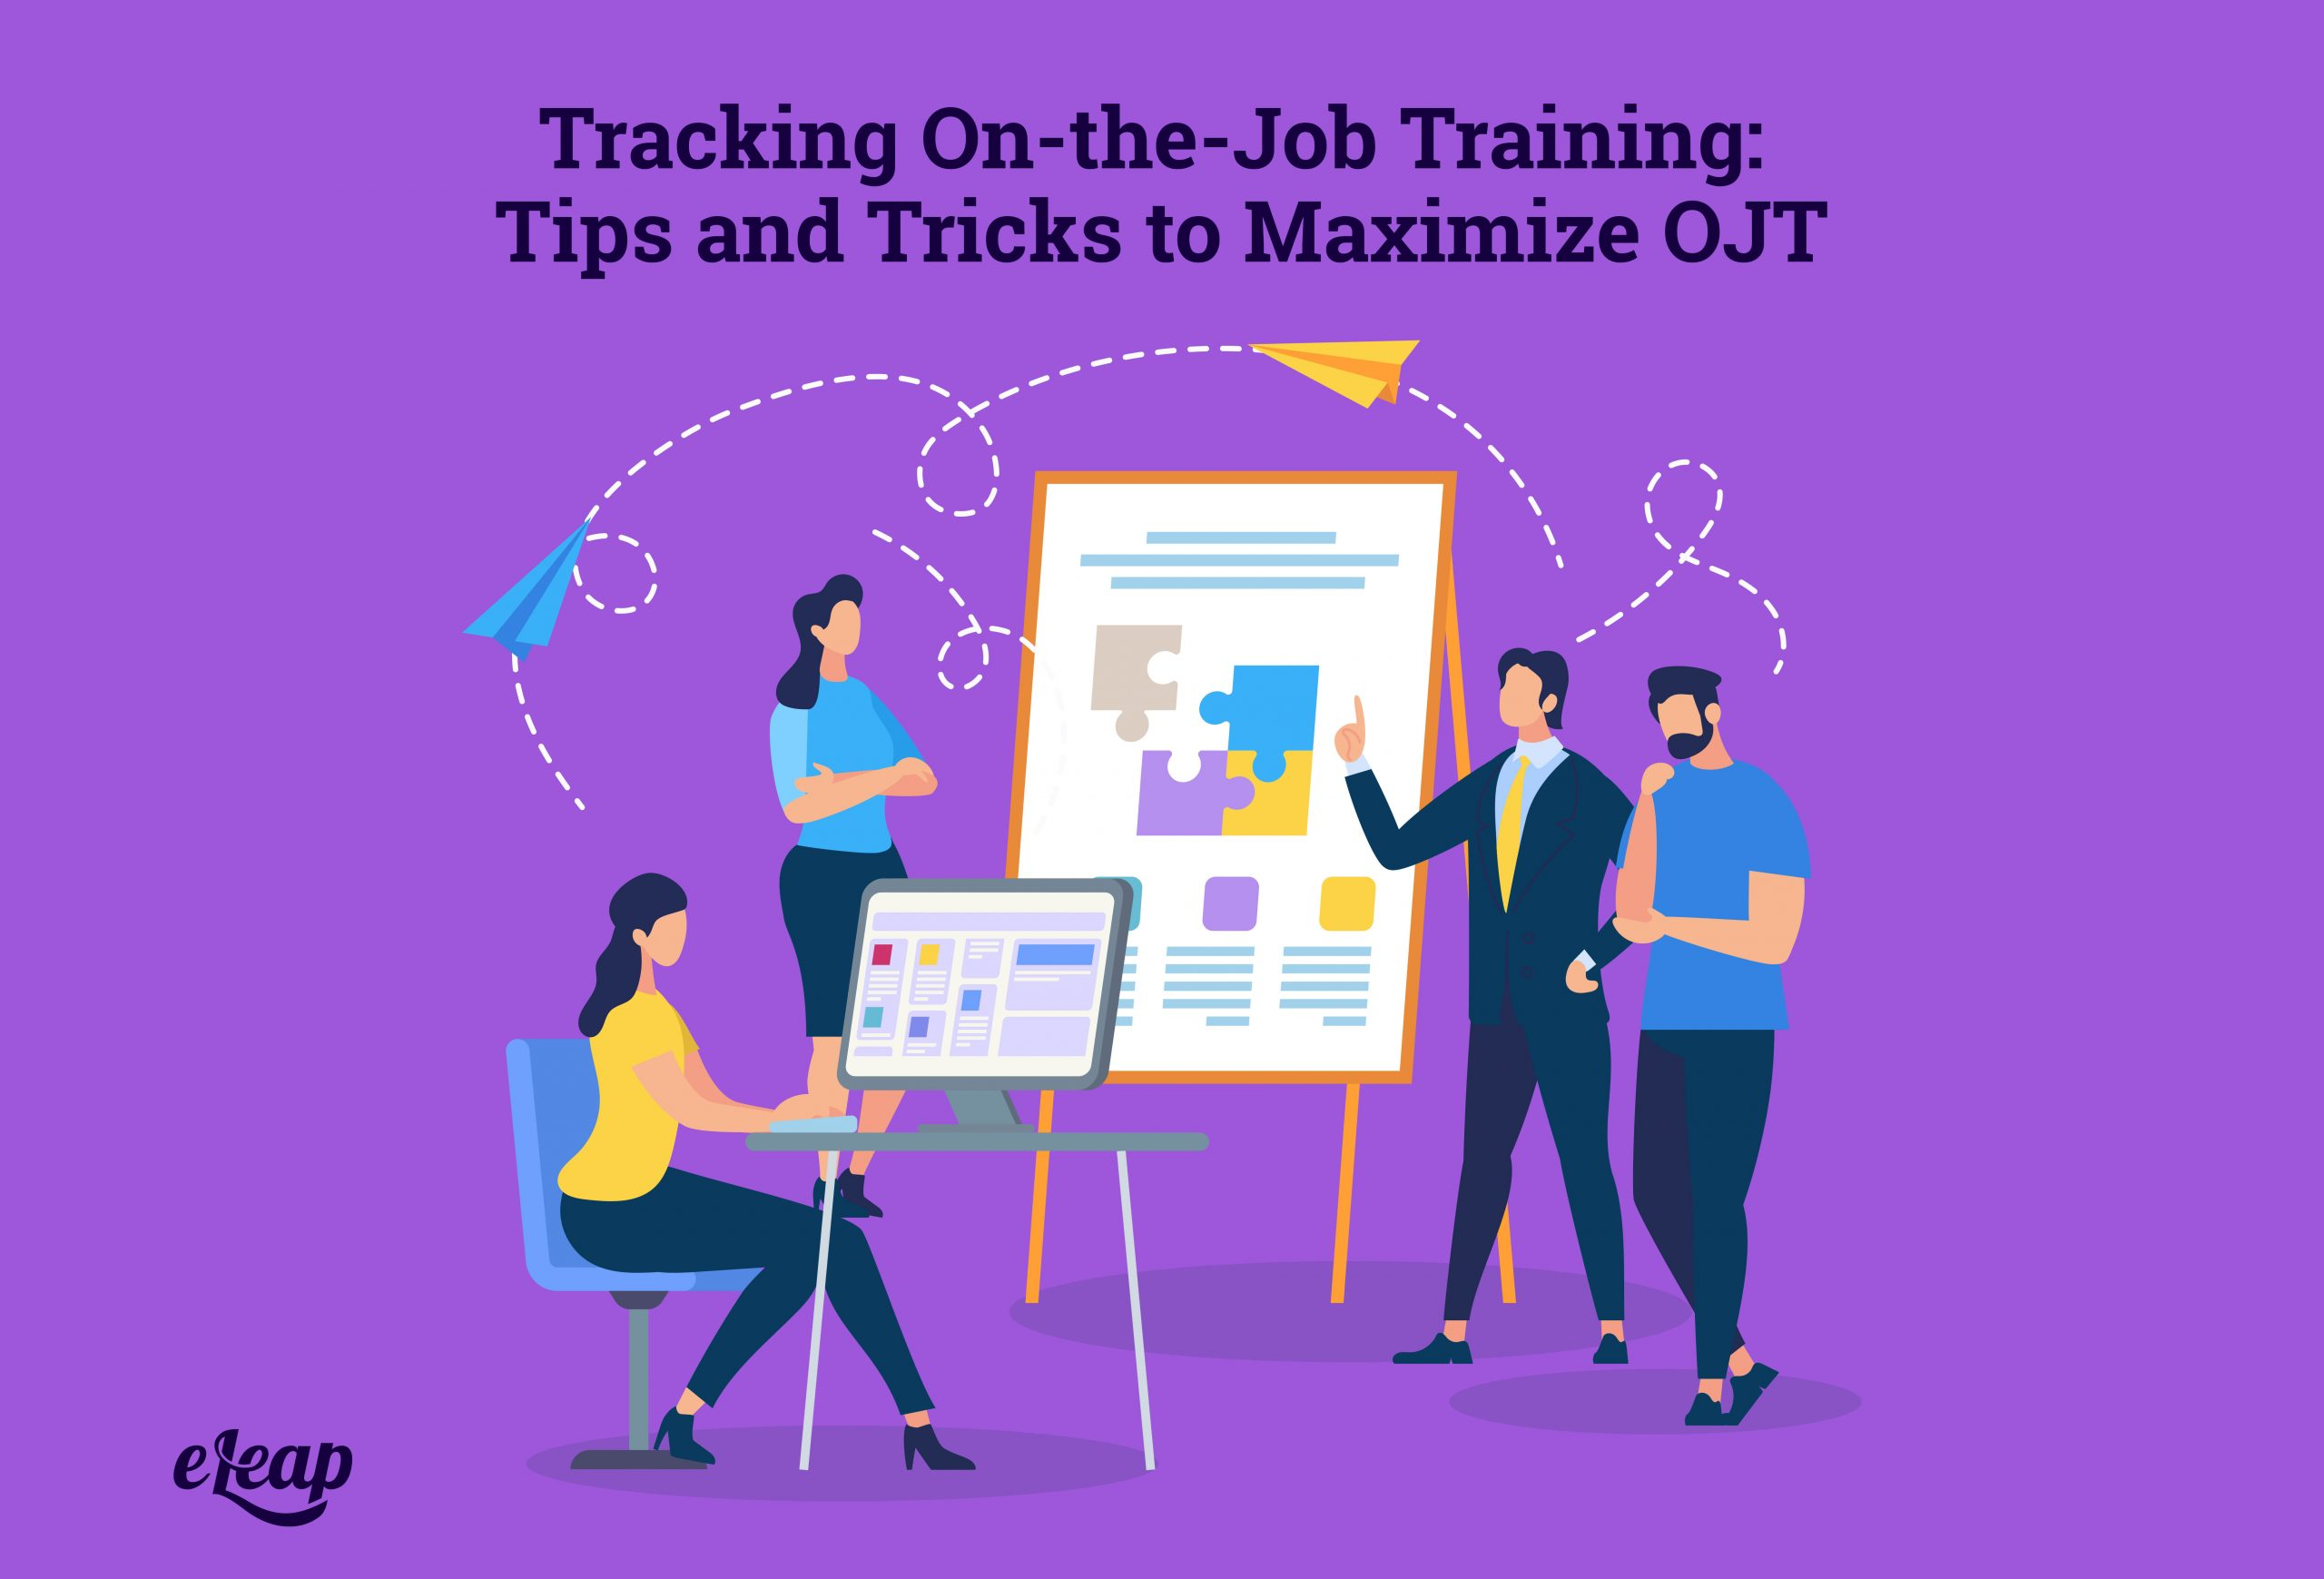 Tracking On-the-Job Training: Tips and Tricks to Maximize OJT